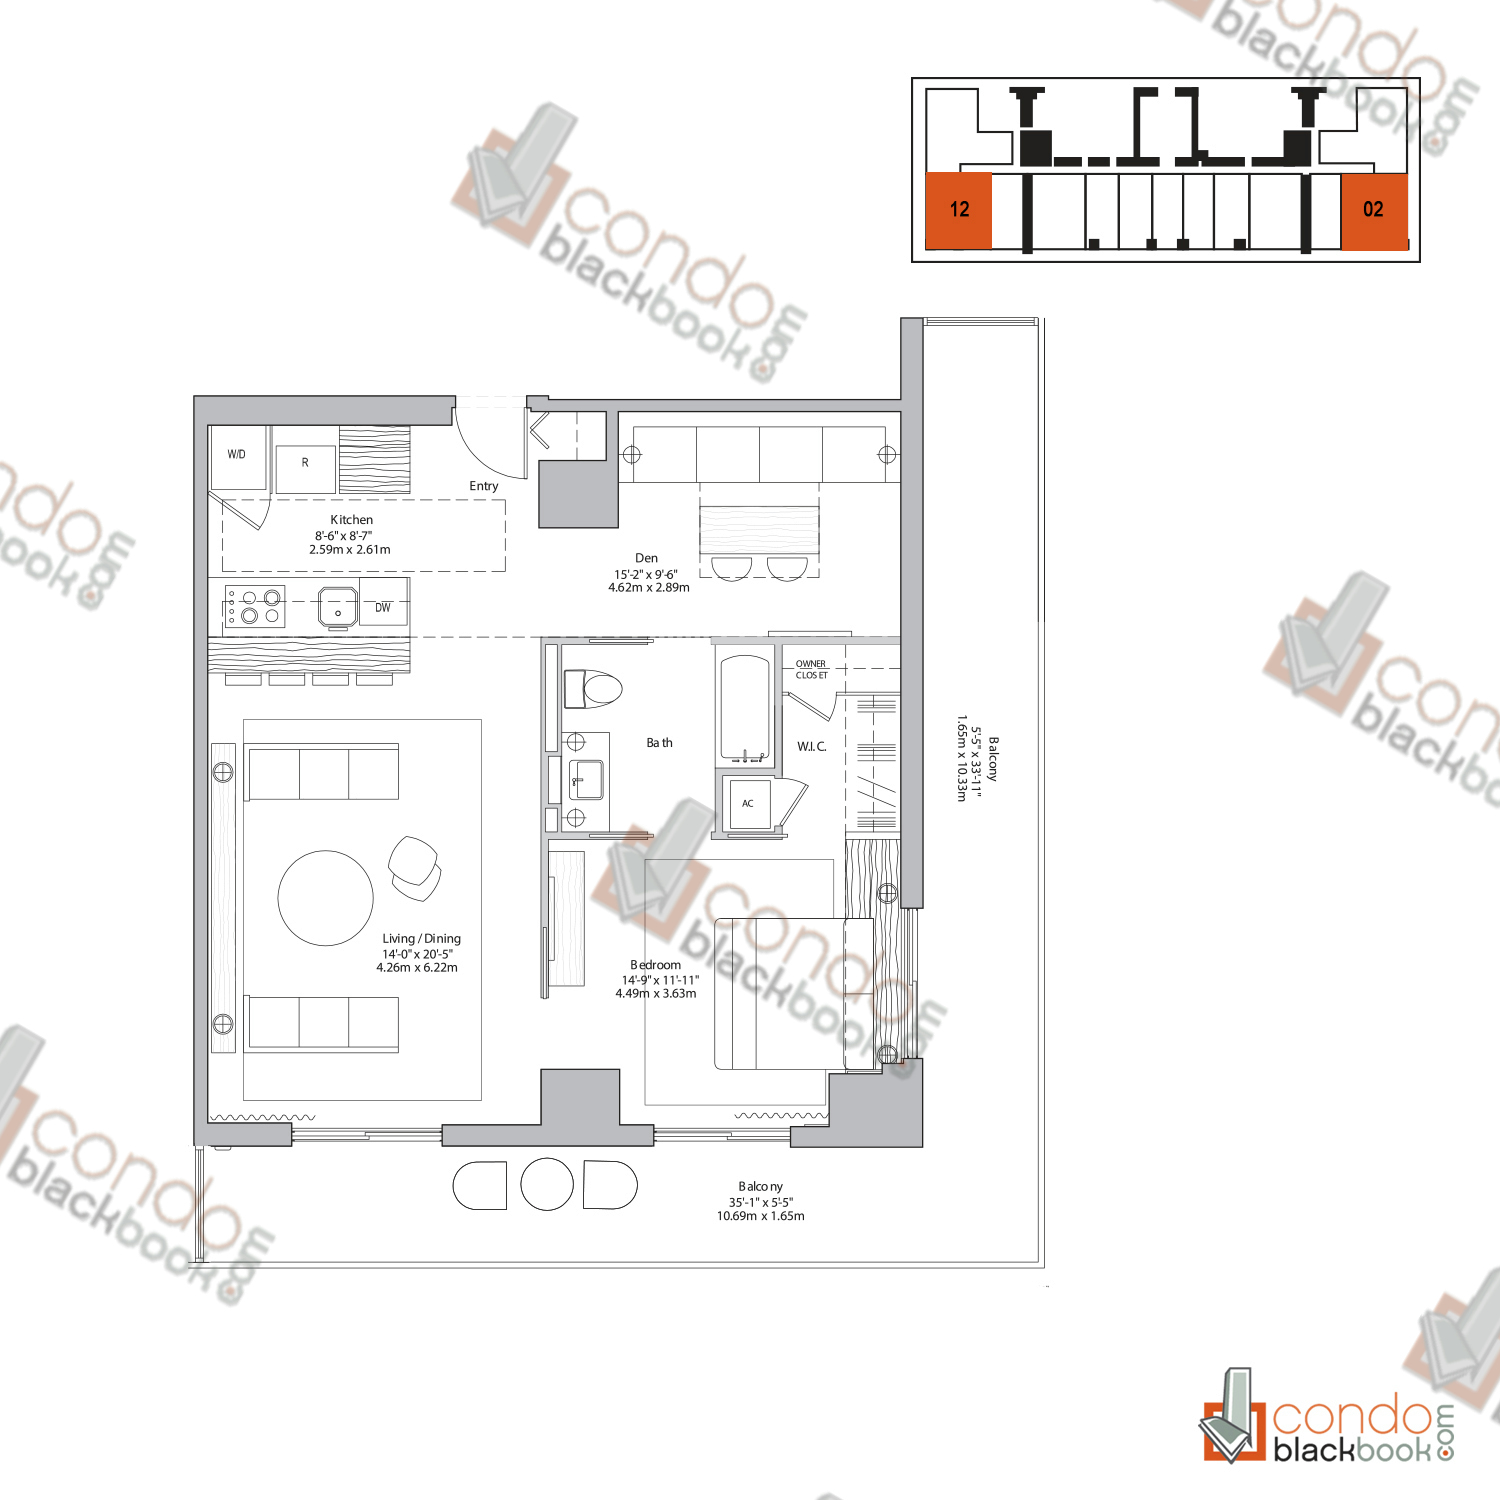 Floor plan for 50 Biscayne Downtown Miami Miami, model P and Z, line 02, 12, 1/1+Den bedrooms, 952 sq ft